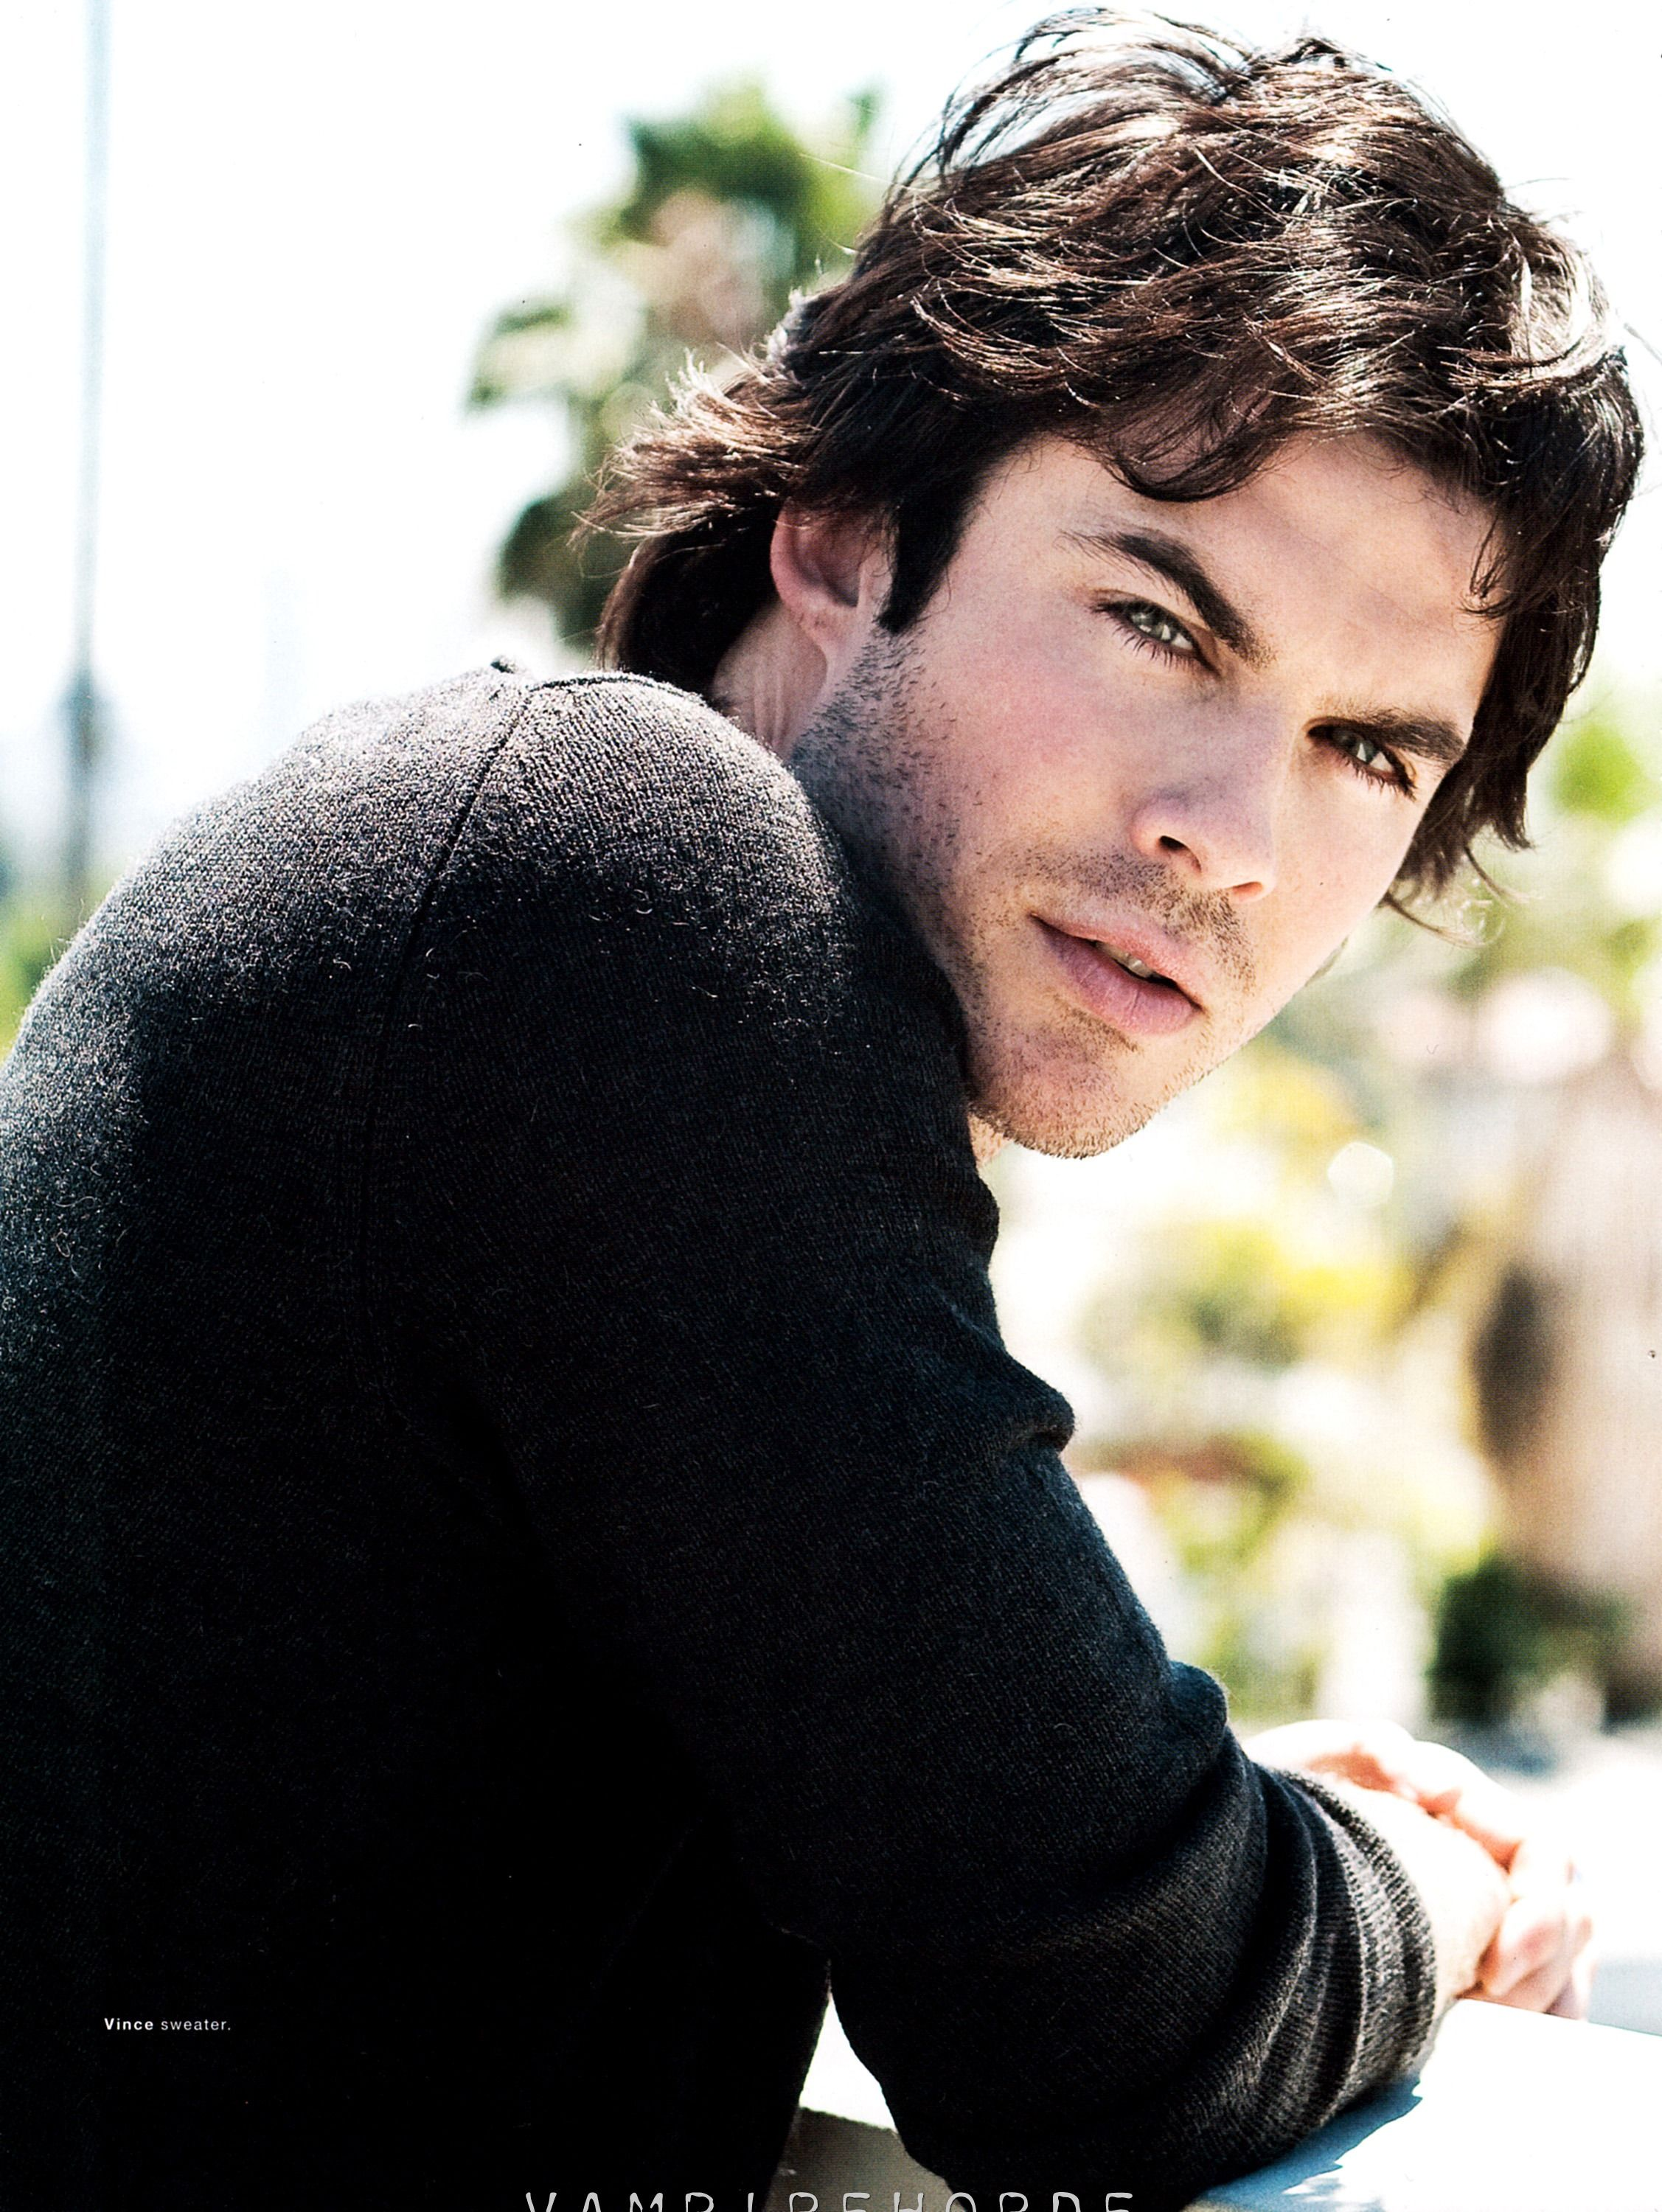 Can't have too many Ian Sommerhalder pics! ;) Vampire